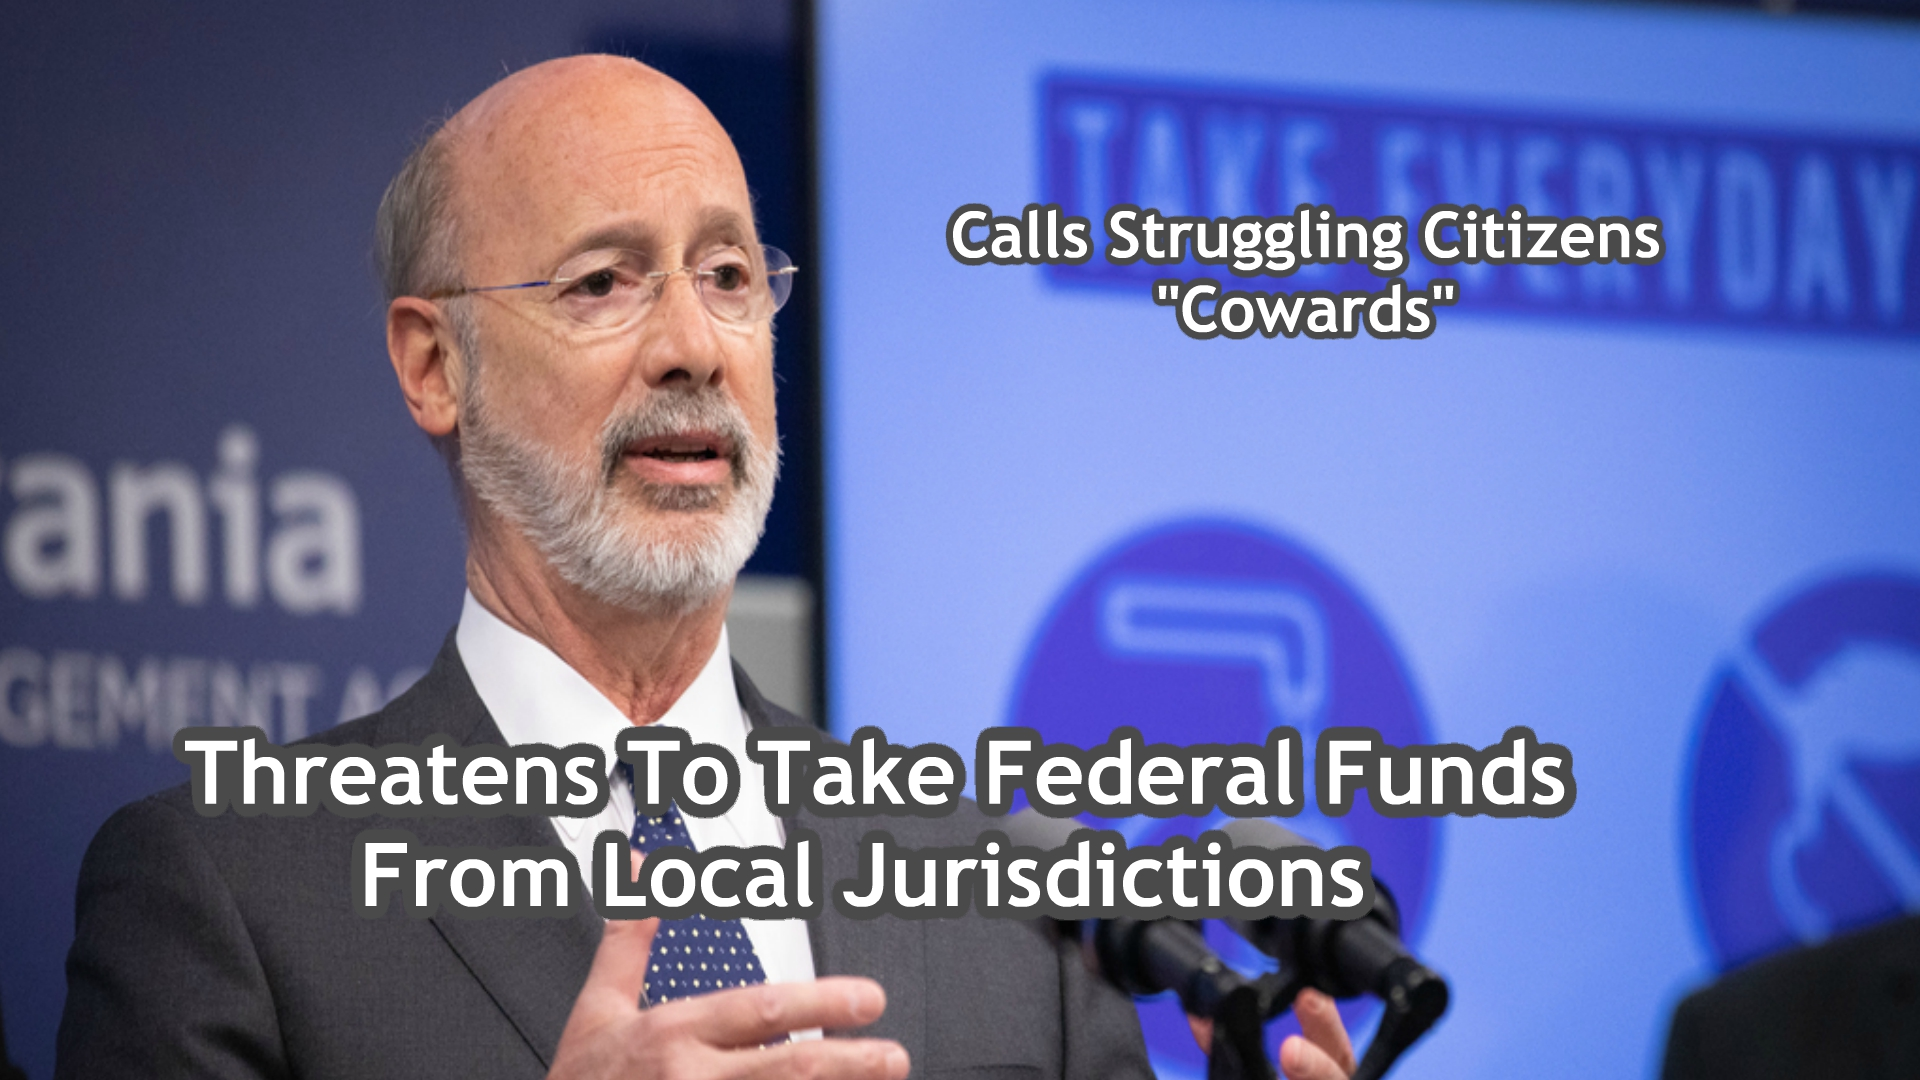 It's Our Money – Federal Government Should Investigate PA Governor Wolf's Threats To County Officials